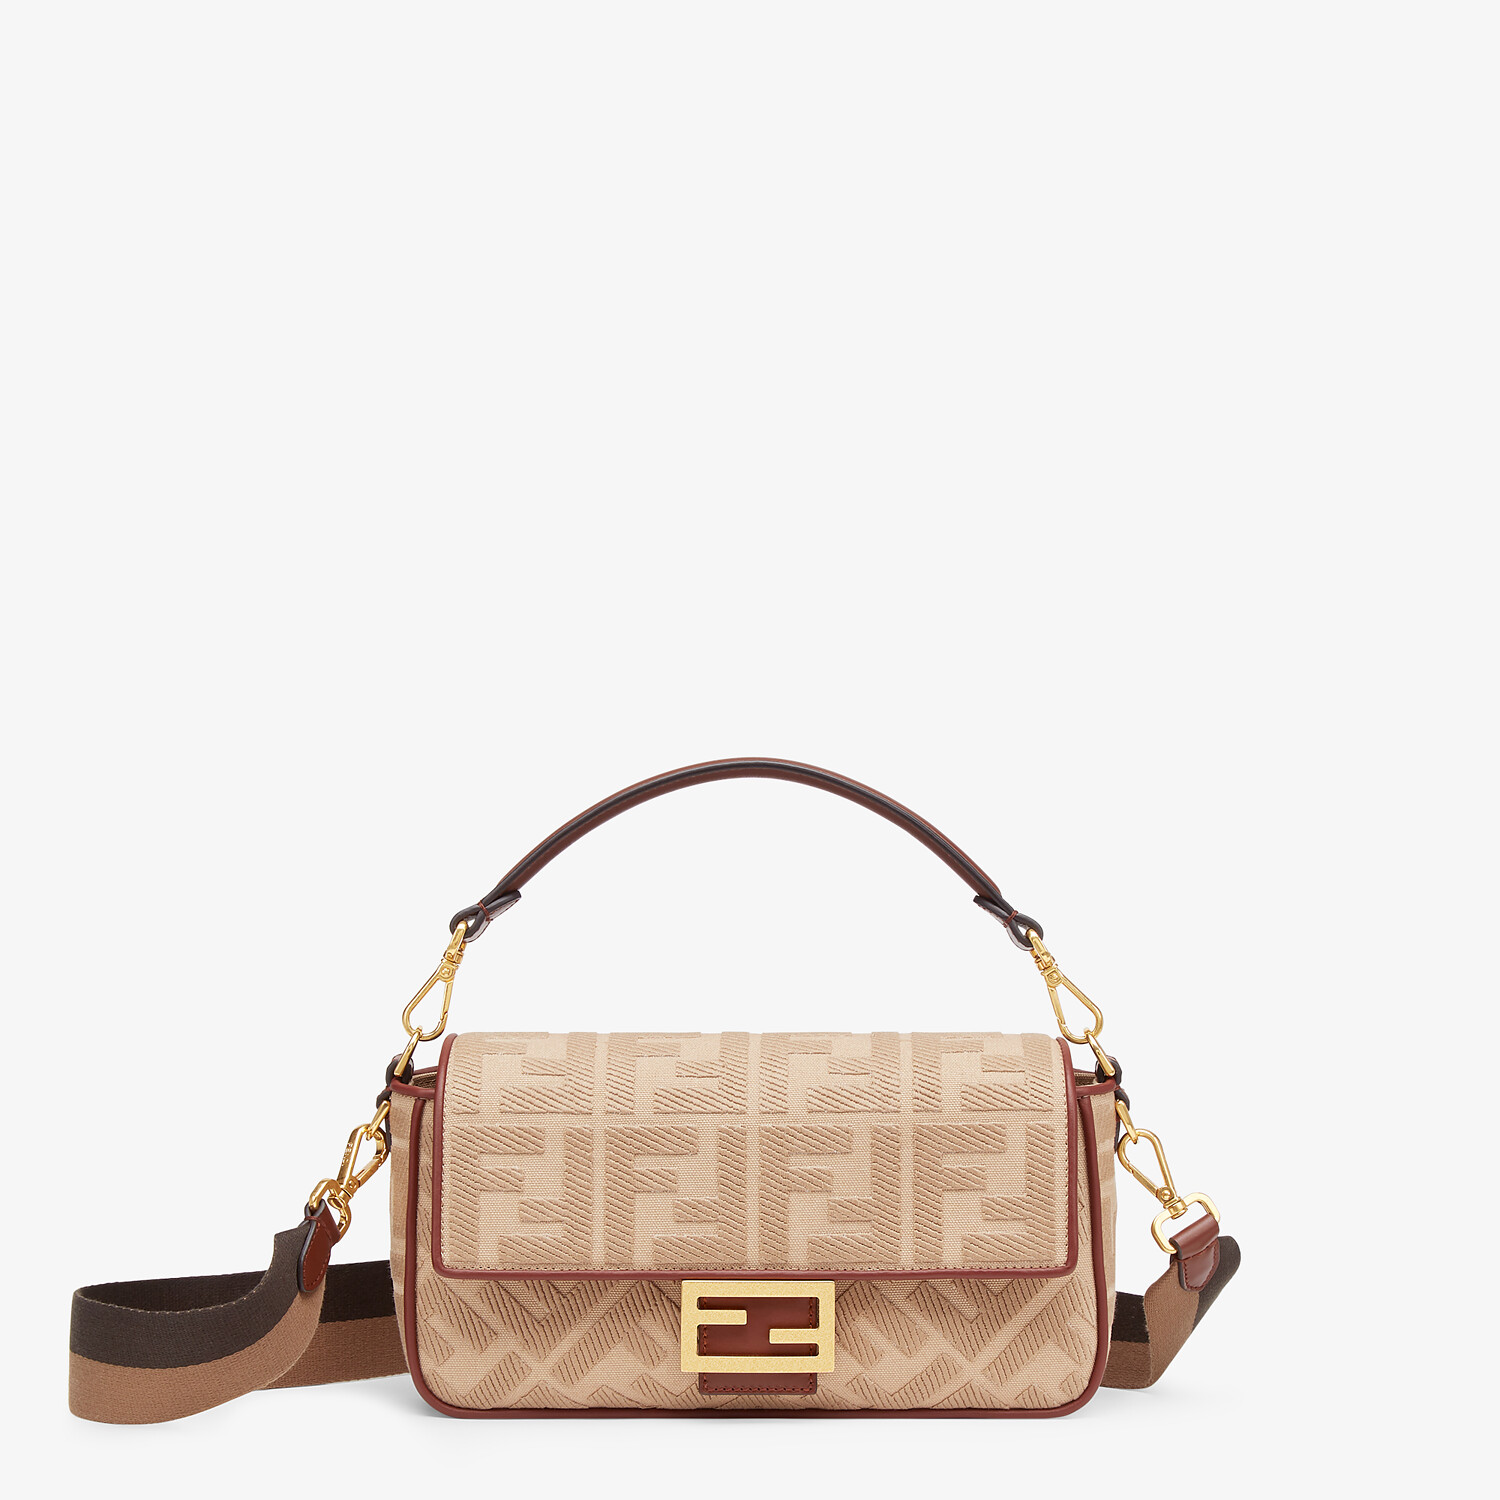 FENDI BAGUETTE - Beige FF canvas bag - view 1 detail